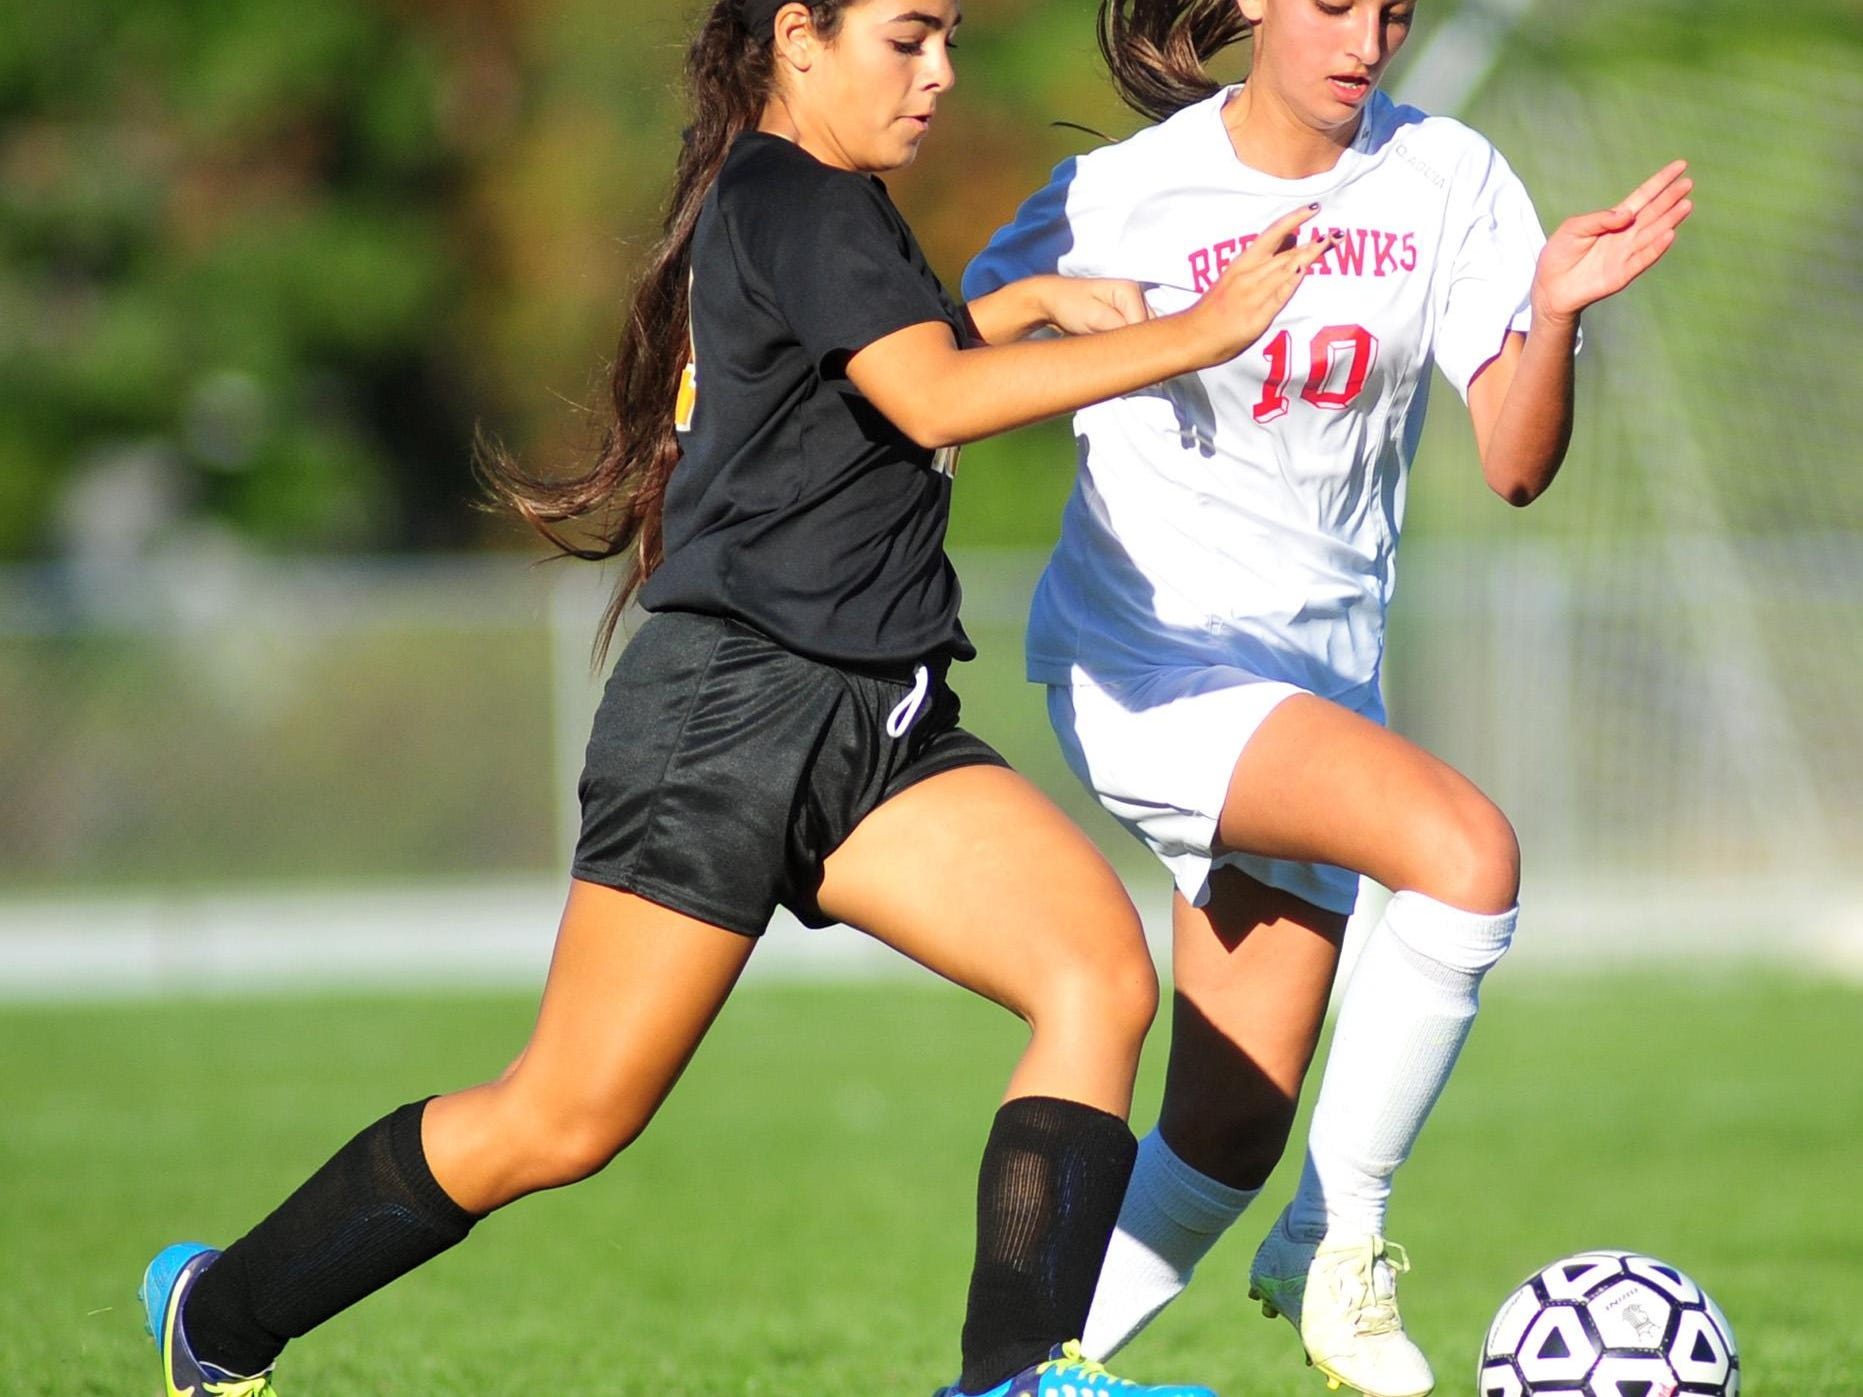 Hanover Park's #19 Haley Scrivo chases the ball with Parsippany's #10 Emilie Rago. Parsippany High School beats Hanover Park 2-0 in girls soccer at Parsippany, NJ. Monday, Oct. 12, 2015. Special to NJ Press Media/Karen Mancinelli/Daily Record MOR 1013 Parsippany-Hanover Park